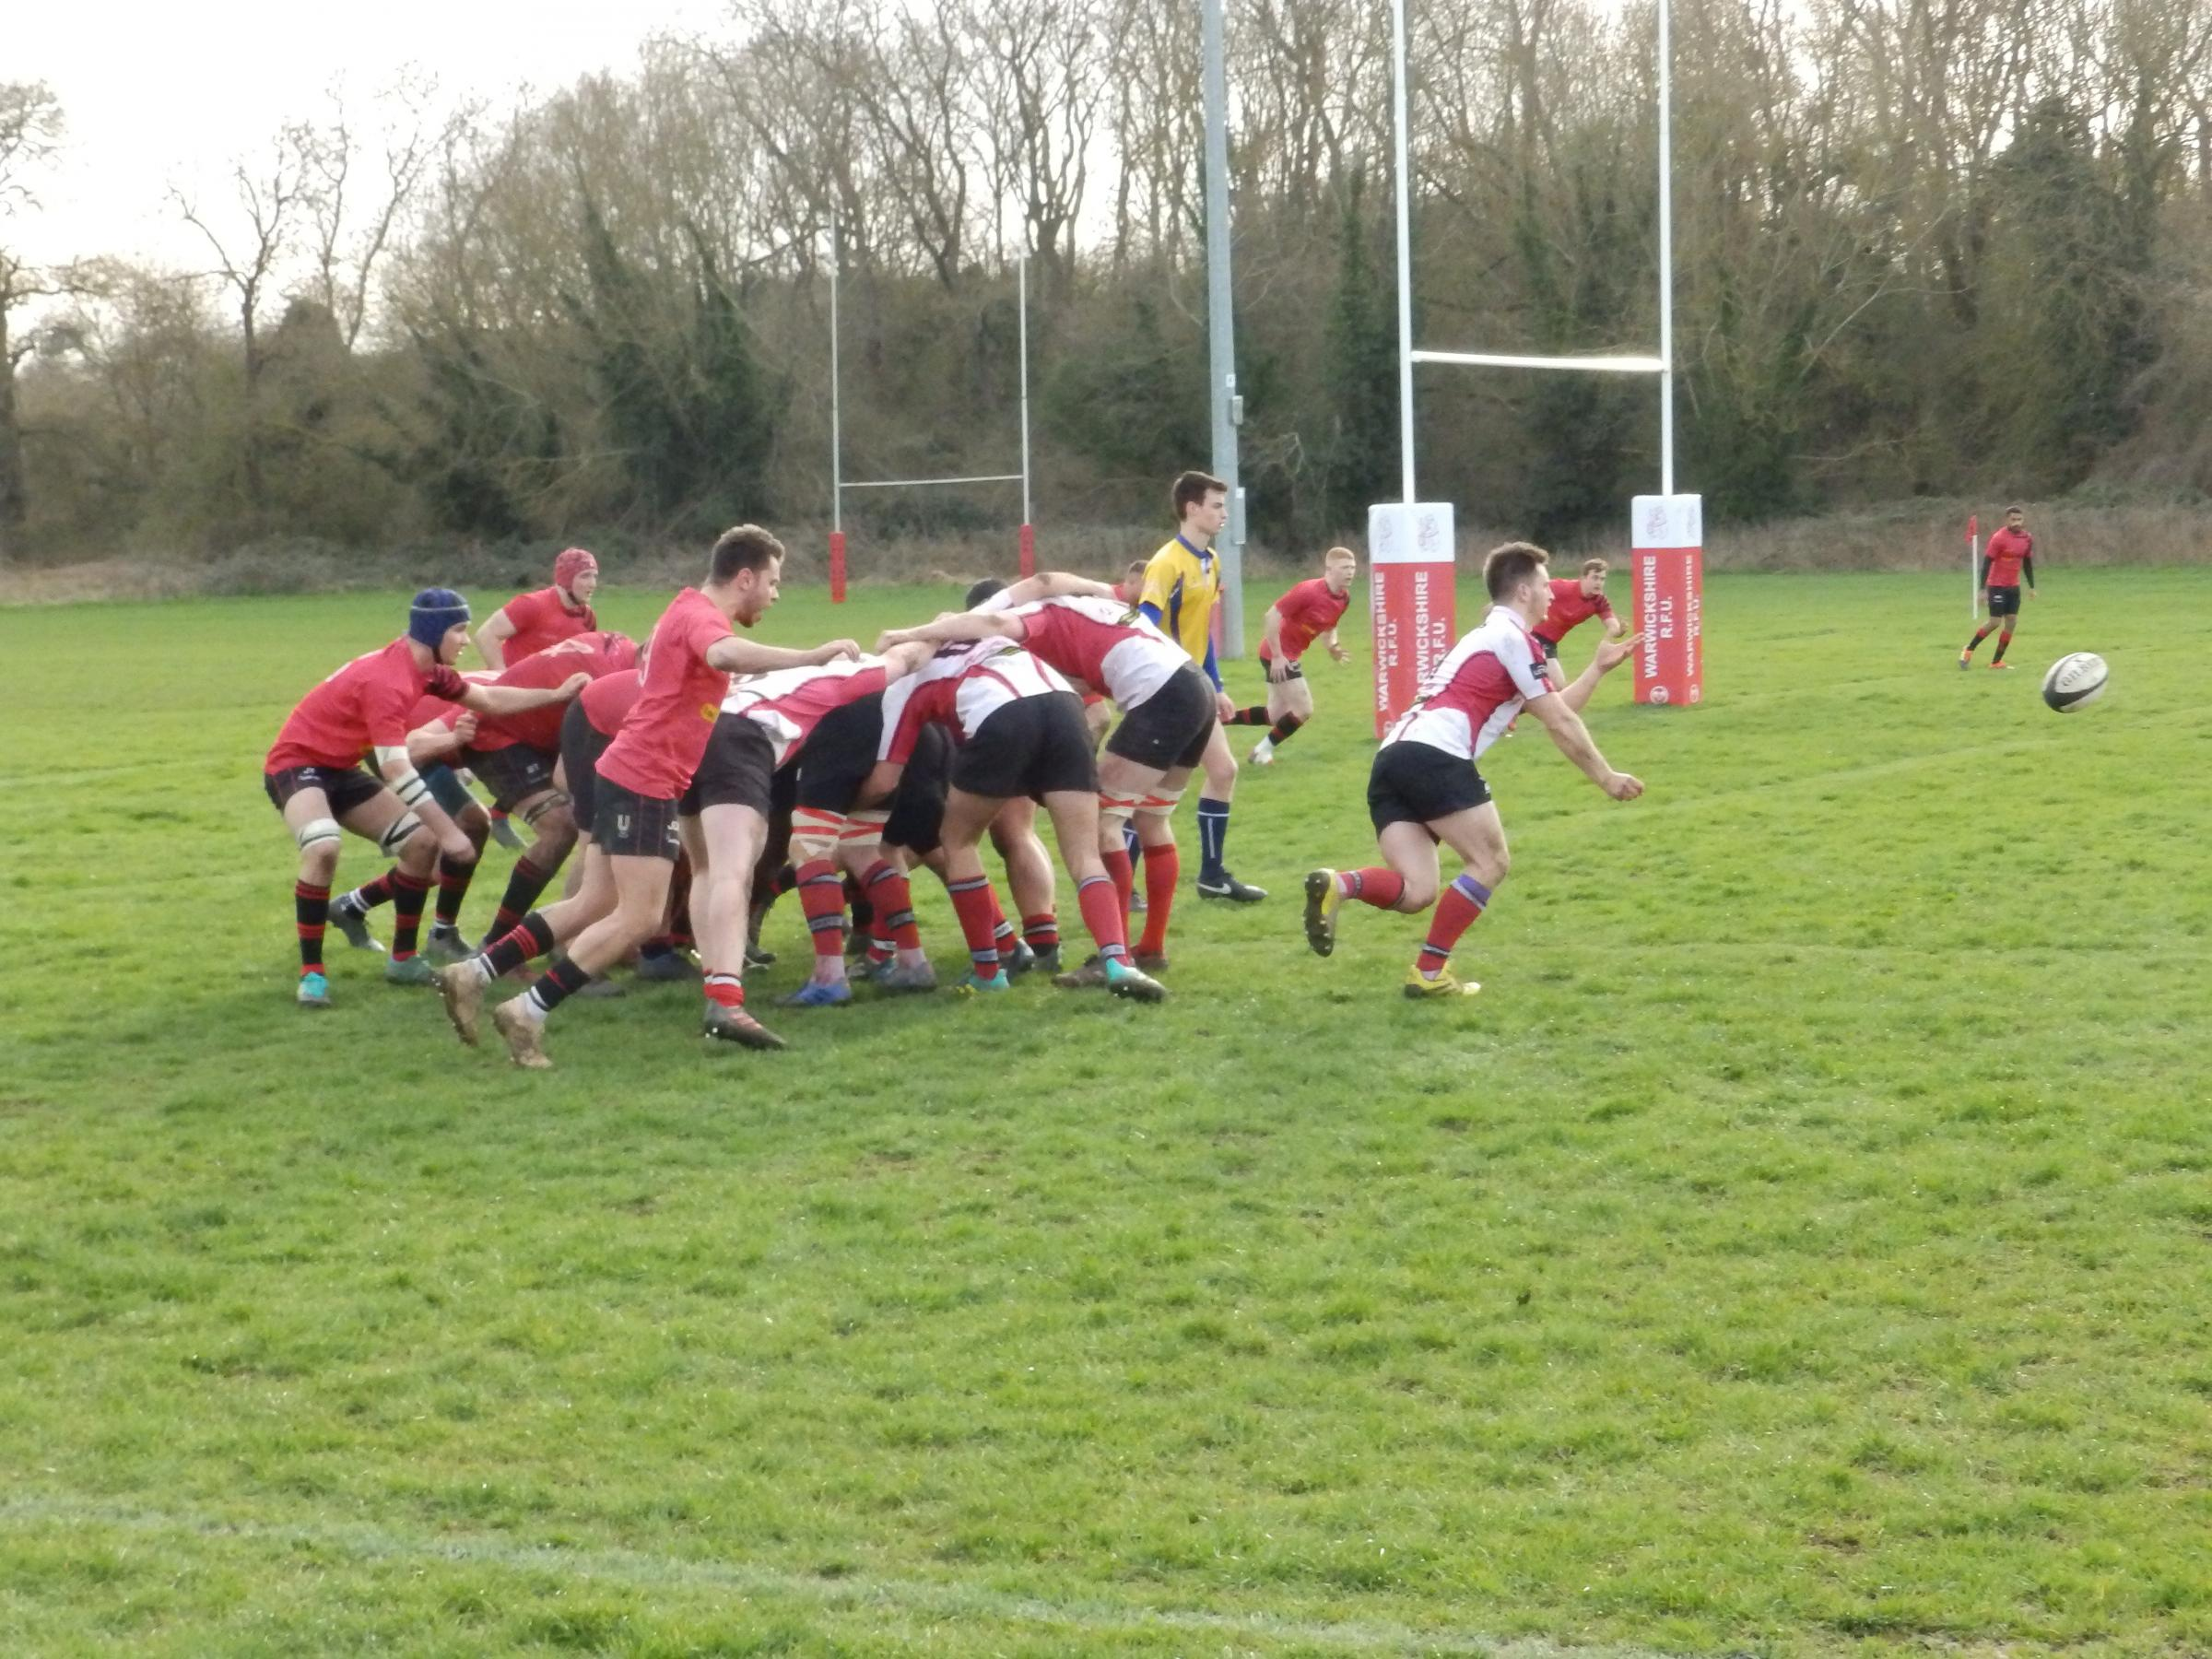 Ollie Llewellyn gets the ball away from an attacking scrum